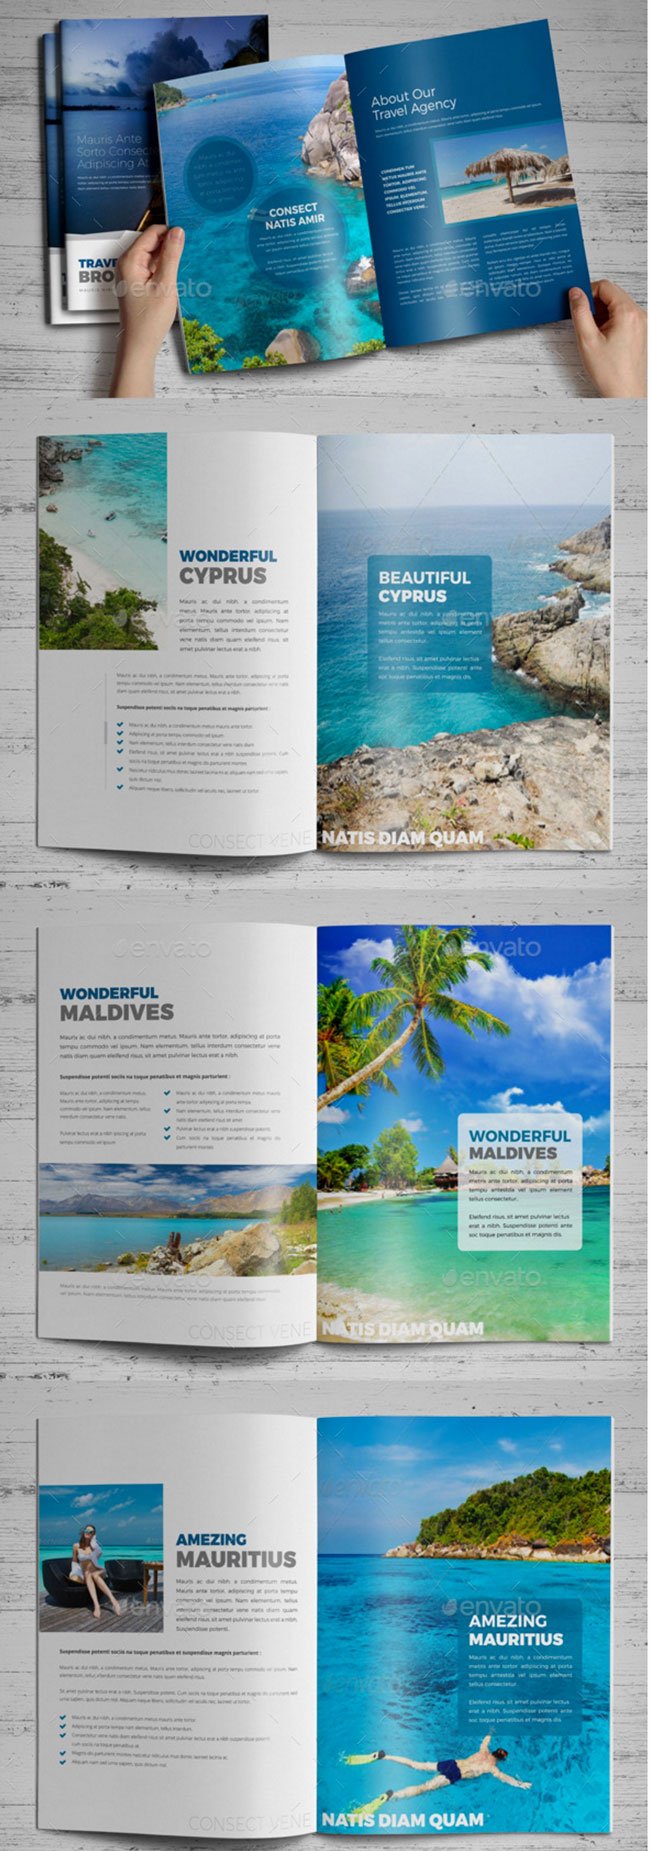 Travel-Agency-Brochure-Catalog-InDesign-v3